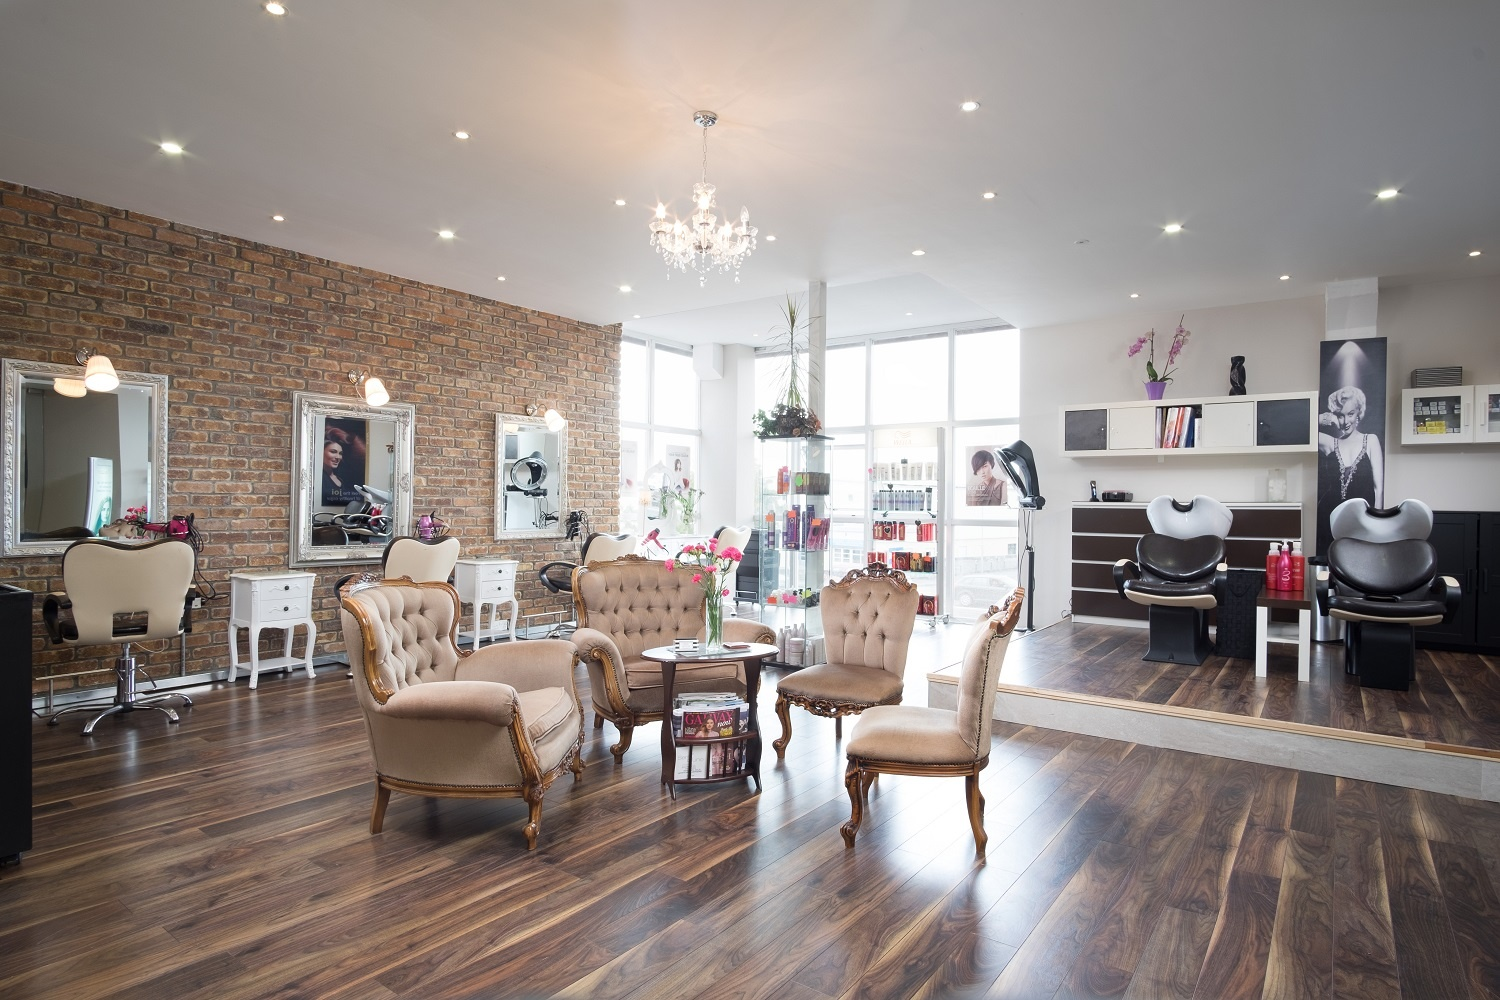 BEUTiFi.com July Salon of the Month. Is this the best Hair Salon in Galway?